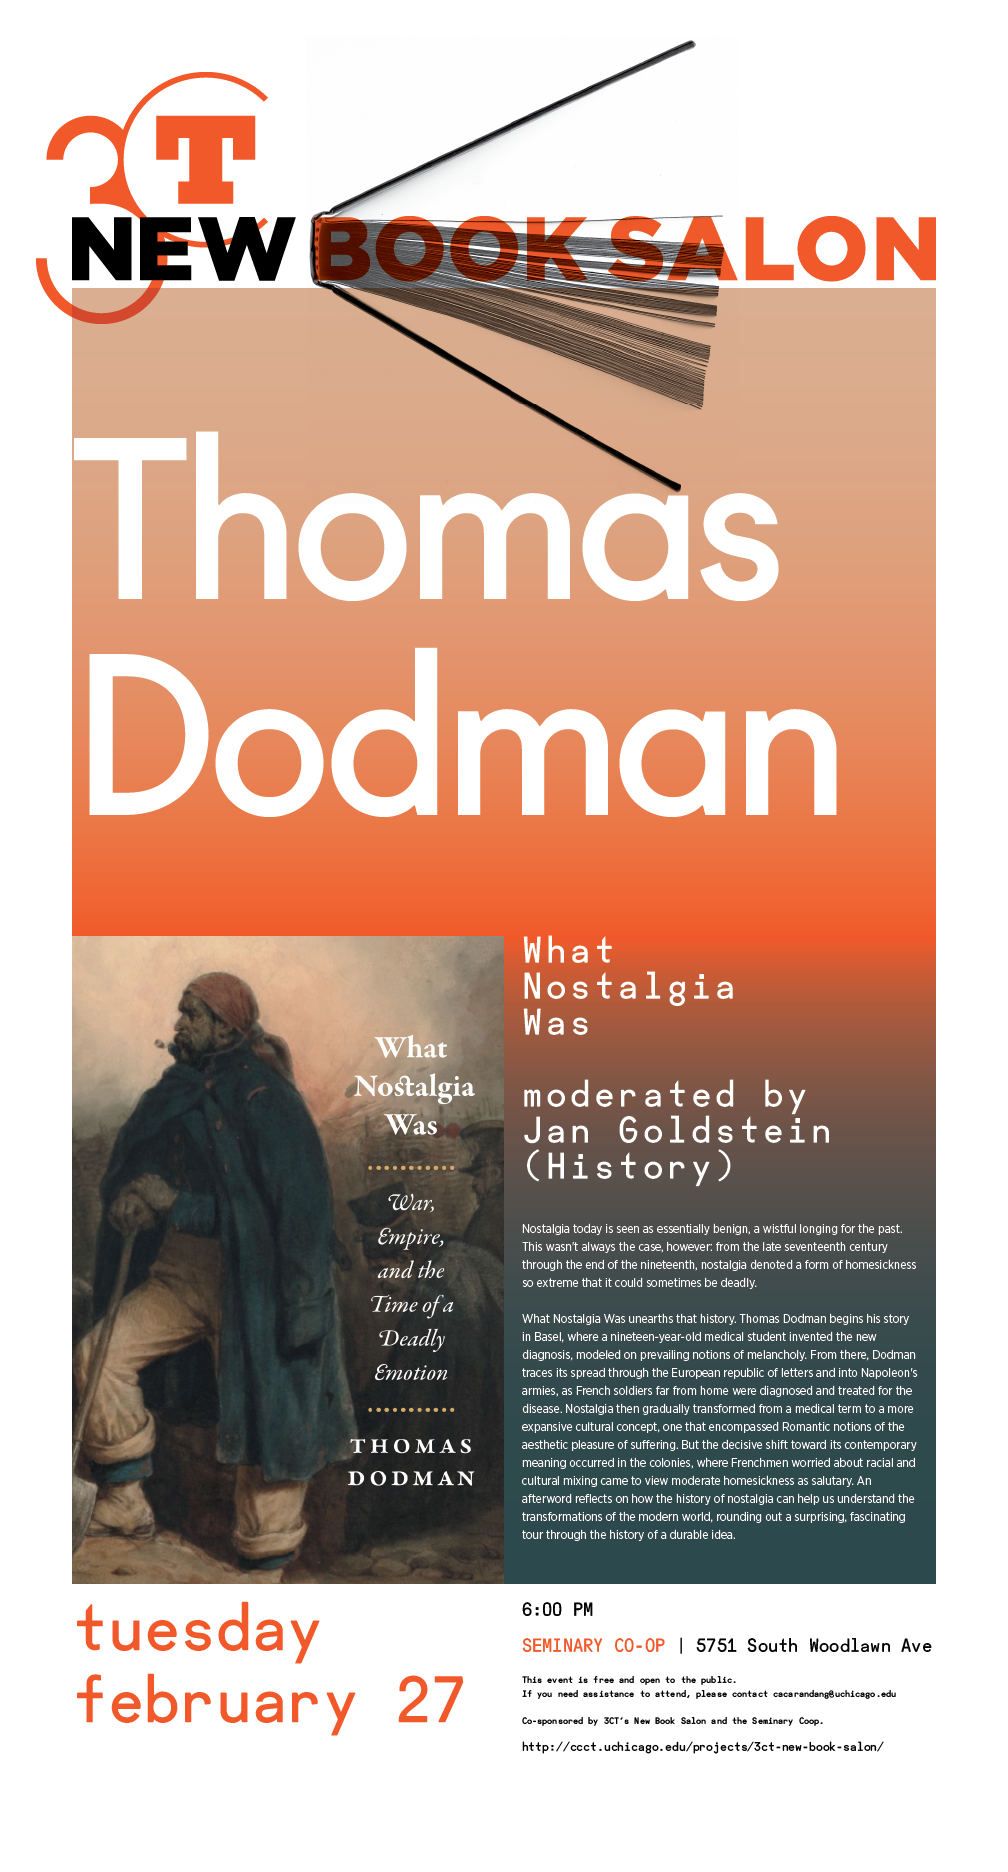 poster for Thomas Dodman's New Book Salon